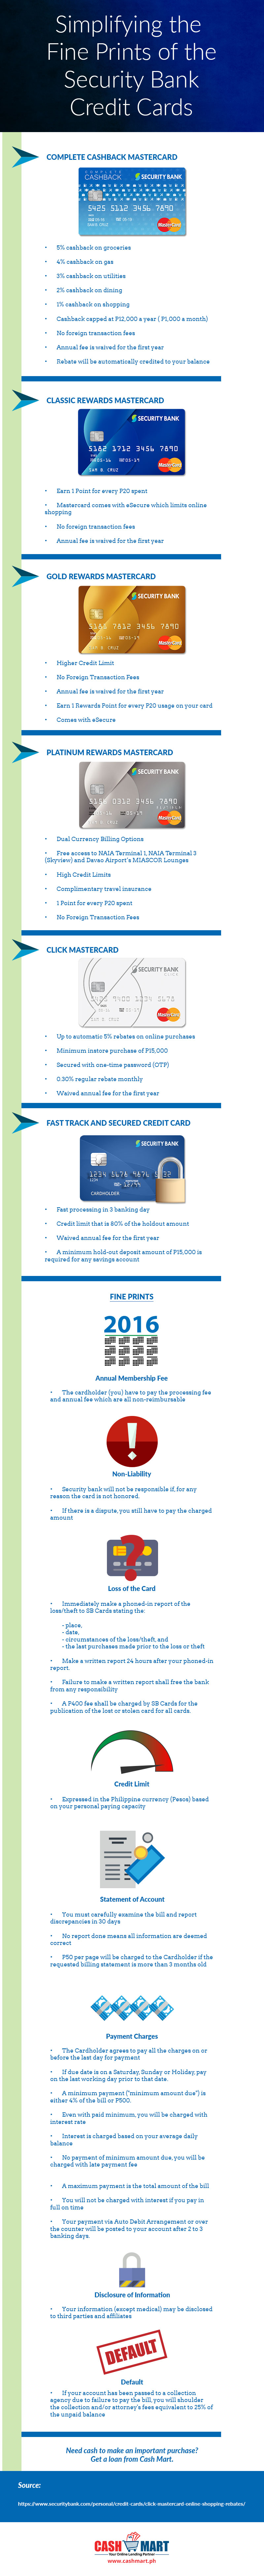 Simplifying the Fine Prints of the Security Bank Credit Cards